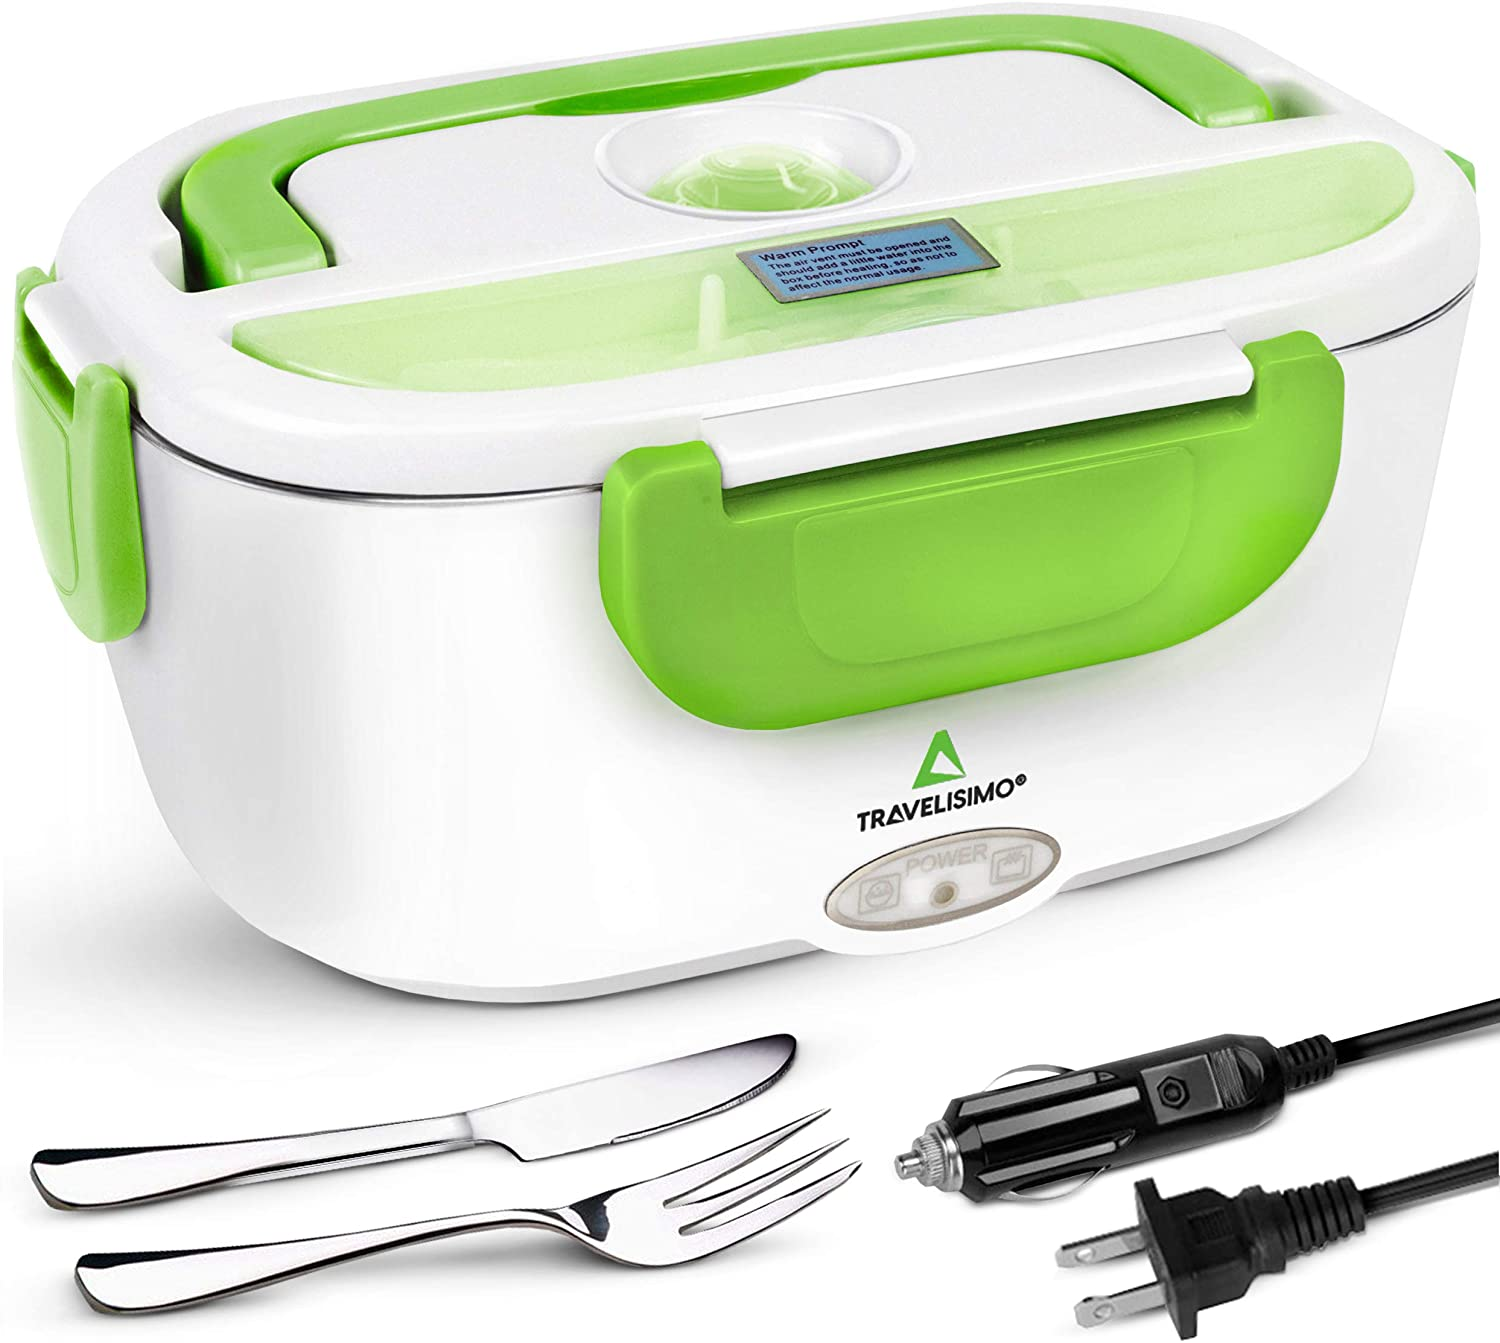 TRAVELISIMO Electric Lunch Box 3 in 1